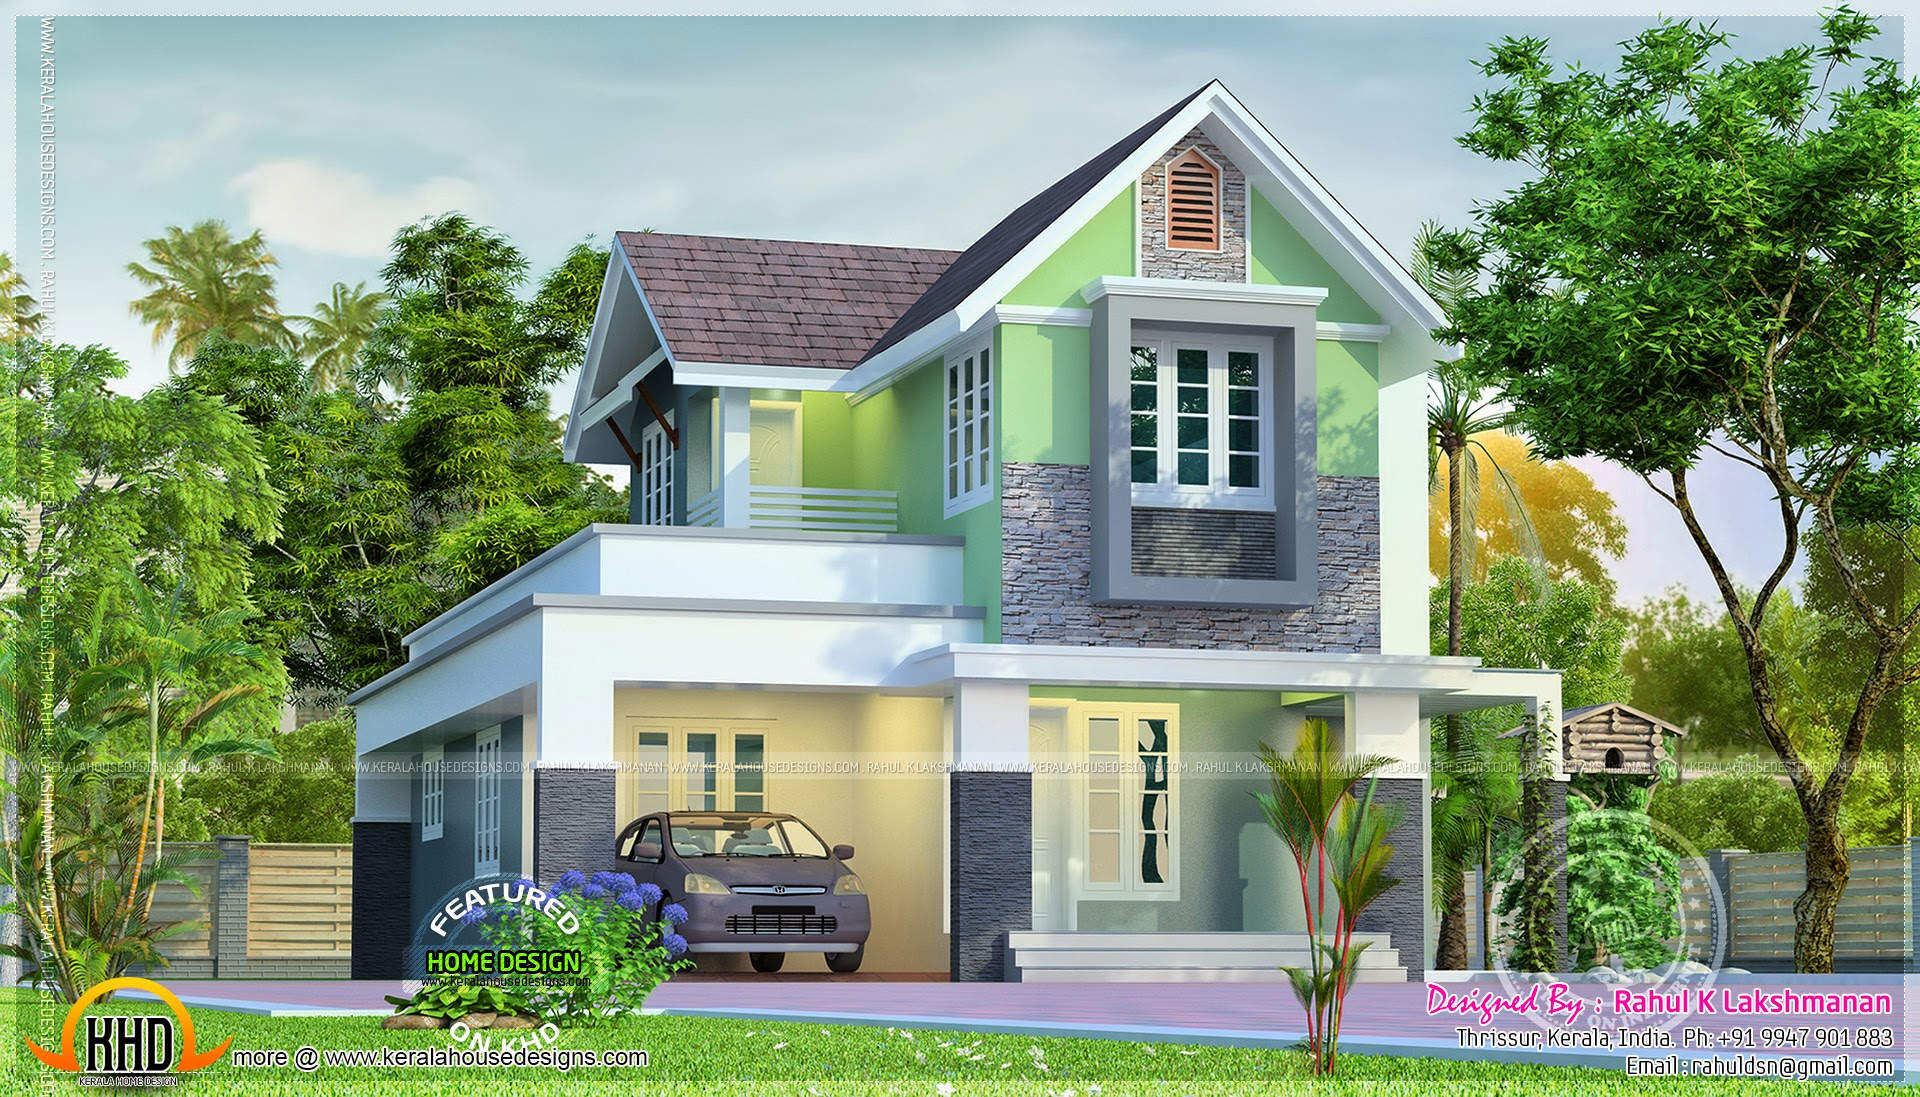 Cute little house plan kerala home design and floor plans for Cute house design